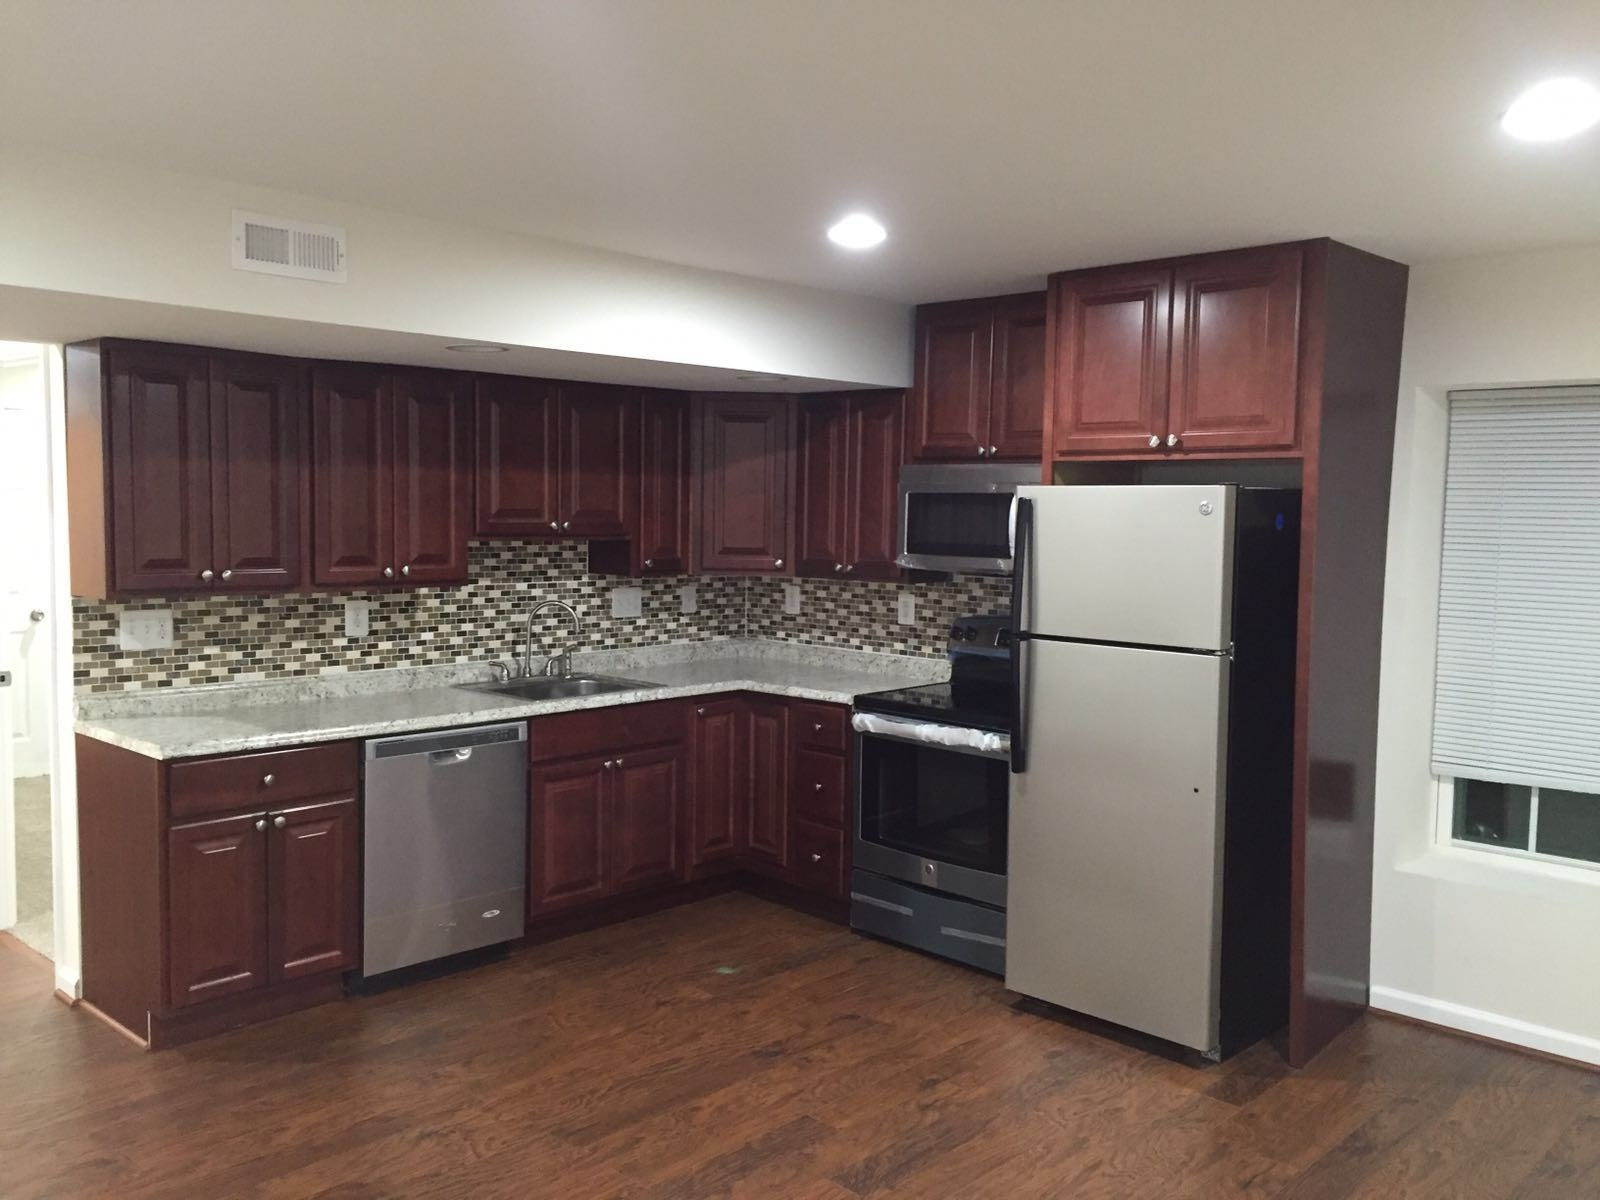 Walkout Private Ent Brand New Basement In A Single